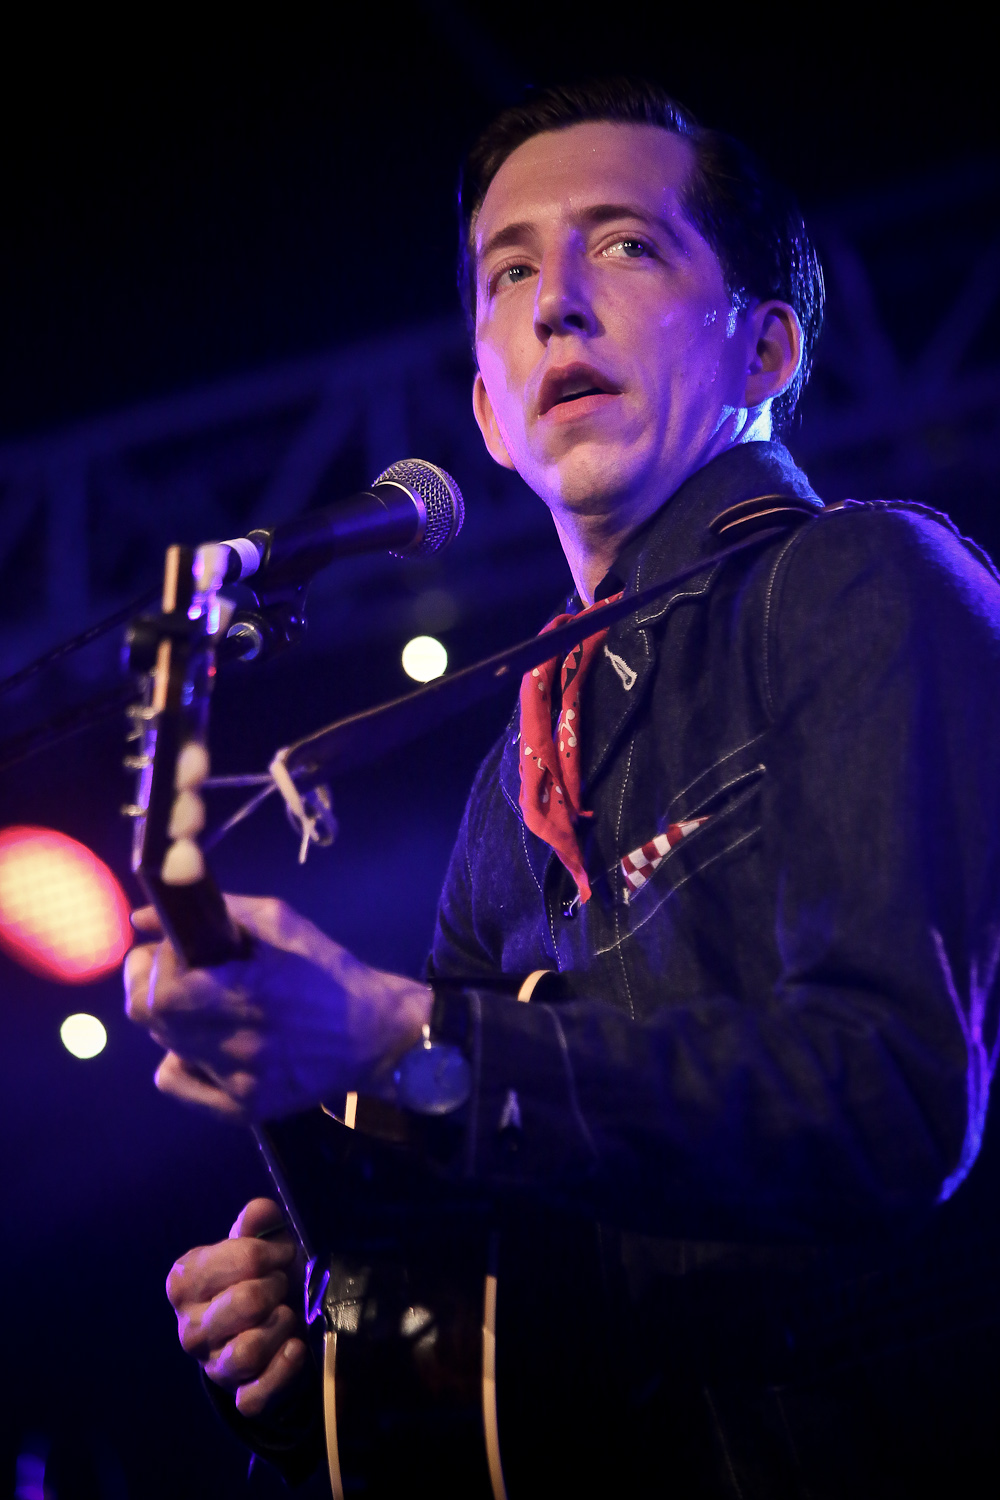 pokey lafarge_bluesfest15_josh groom (10).jpg